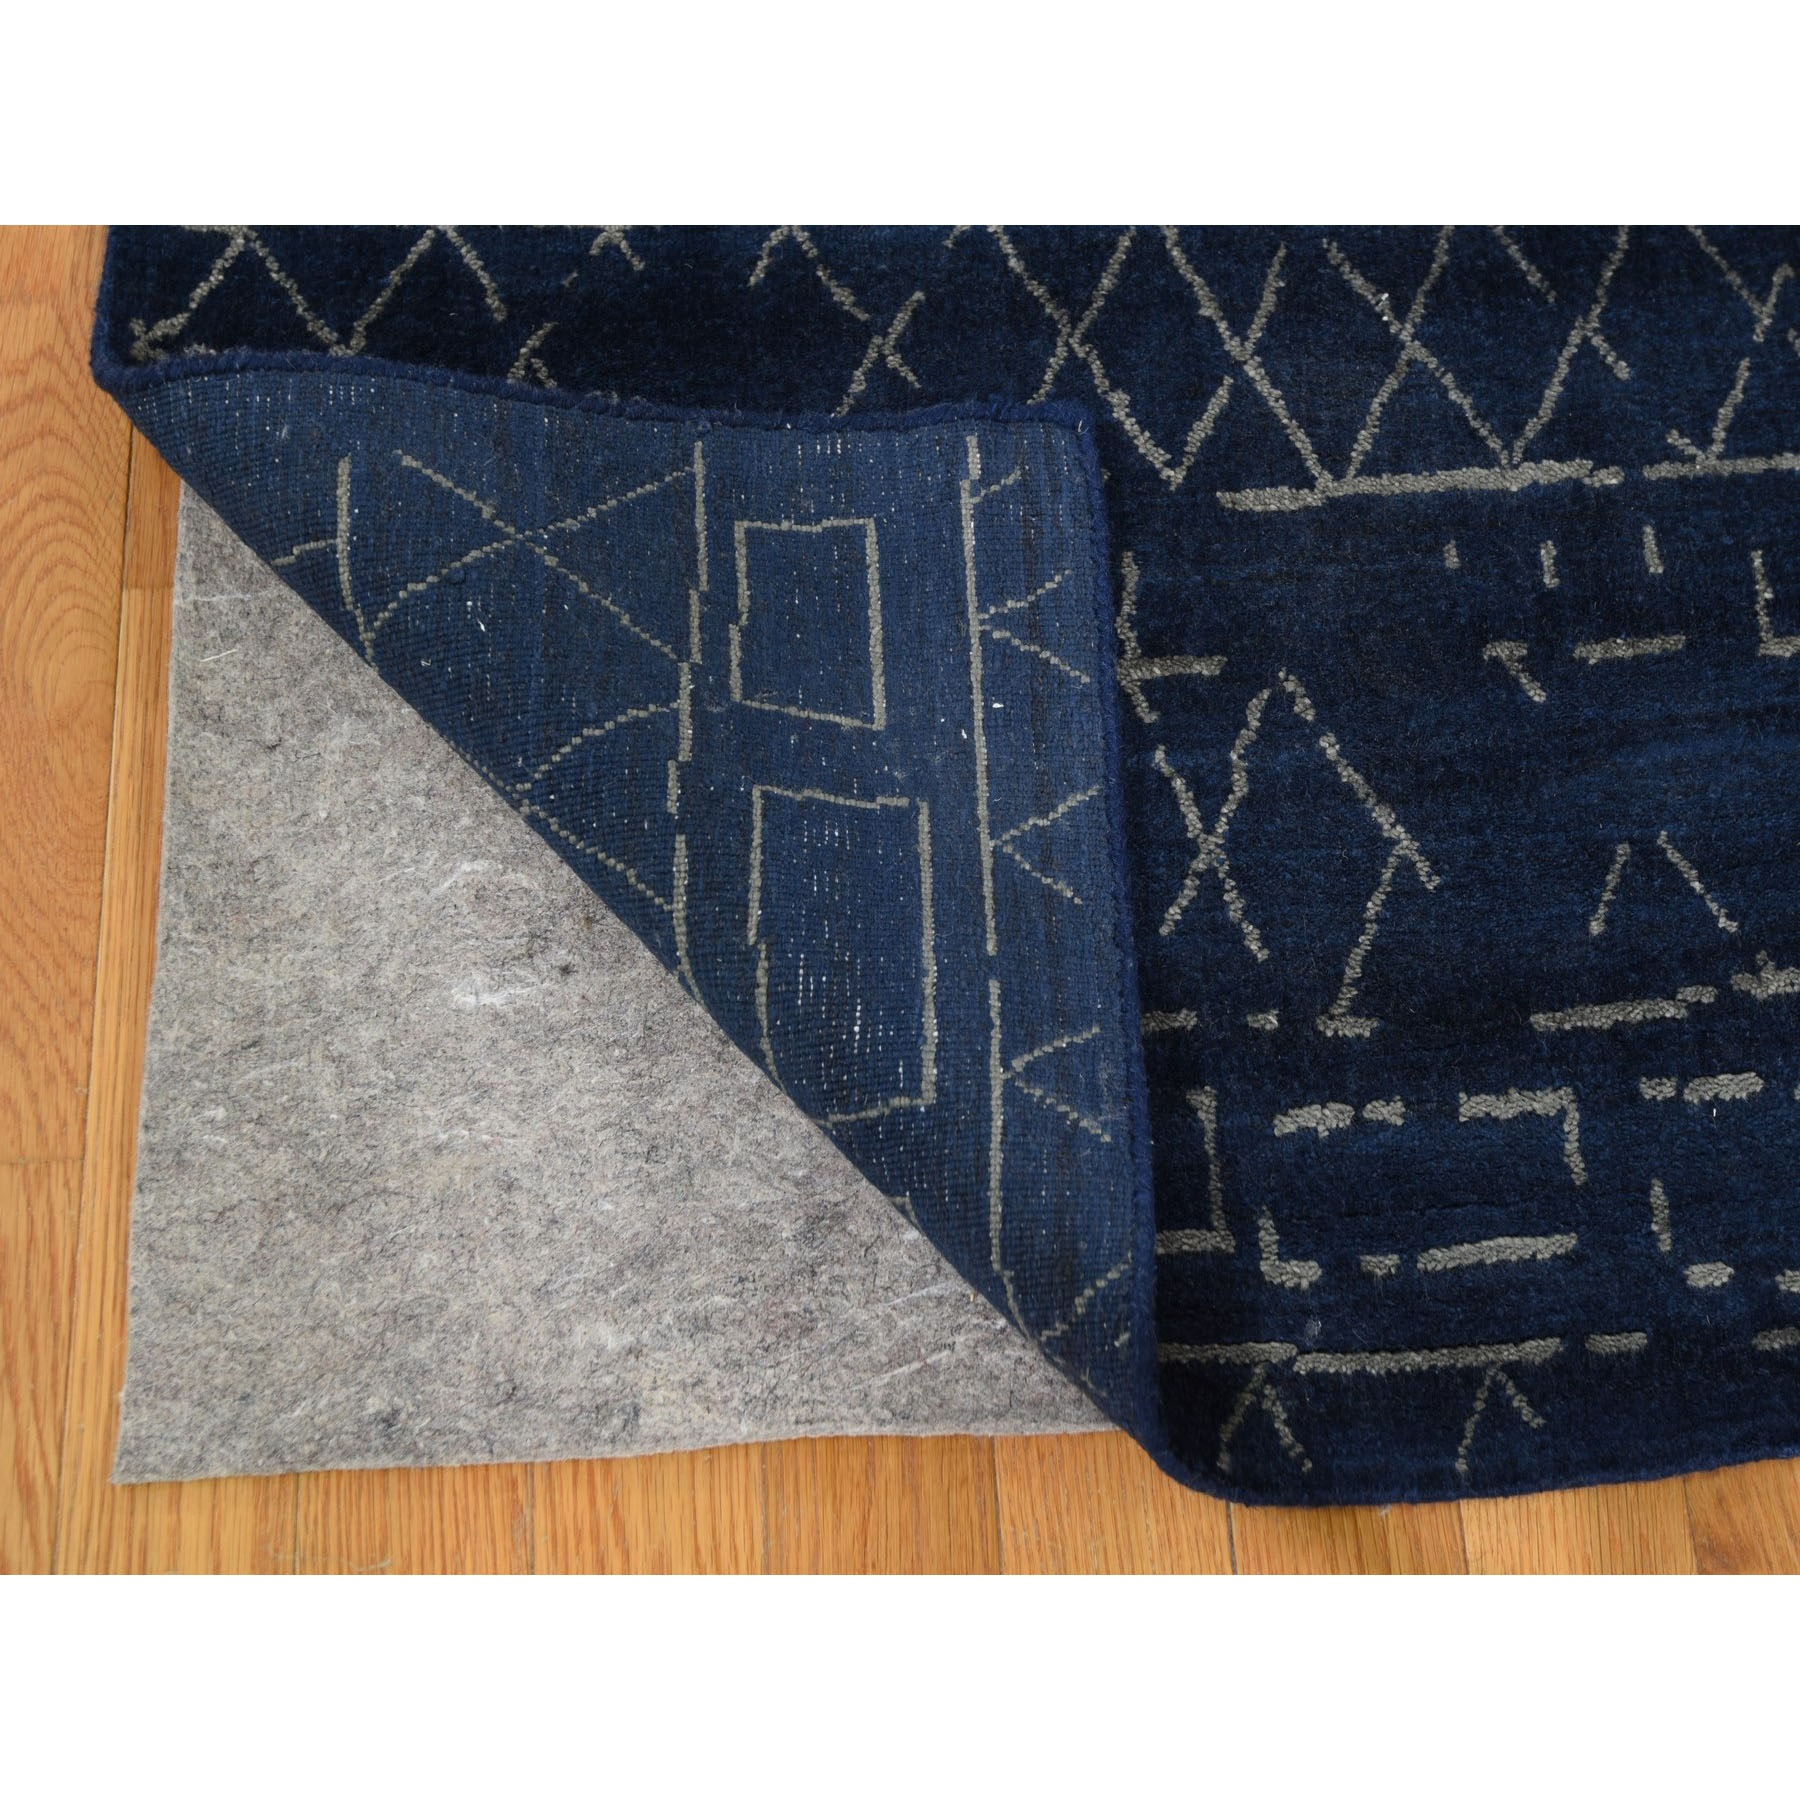 8'x10' Navy Blue Wool And Silk Modern Hand Loomed Oriental Rug